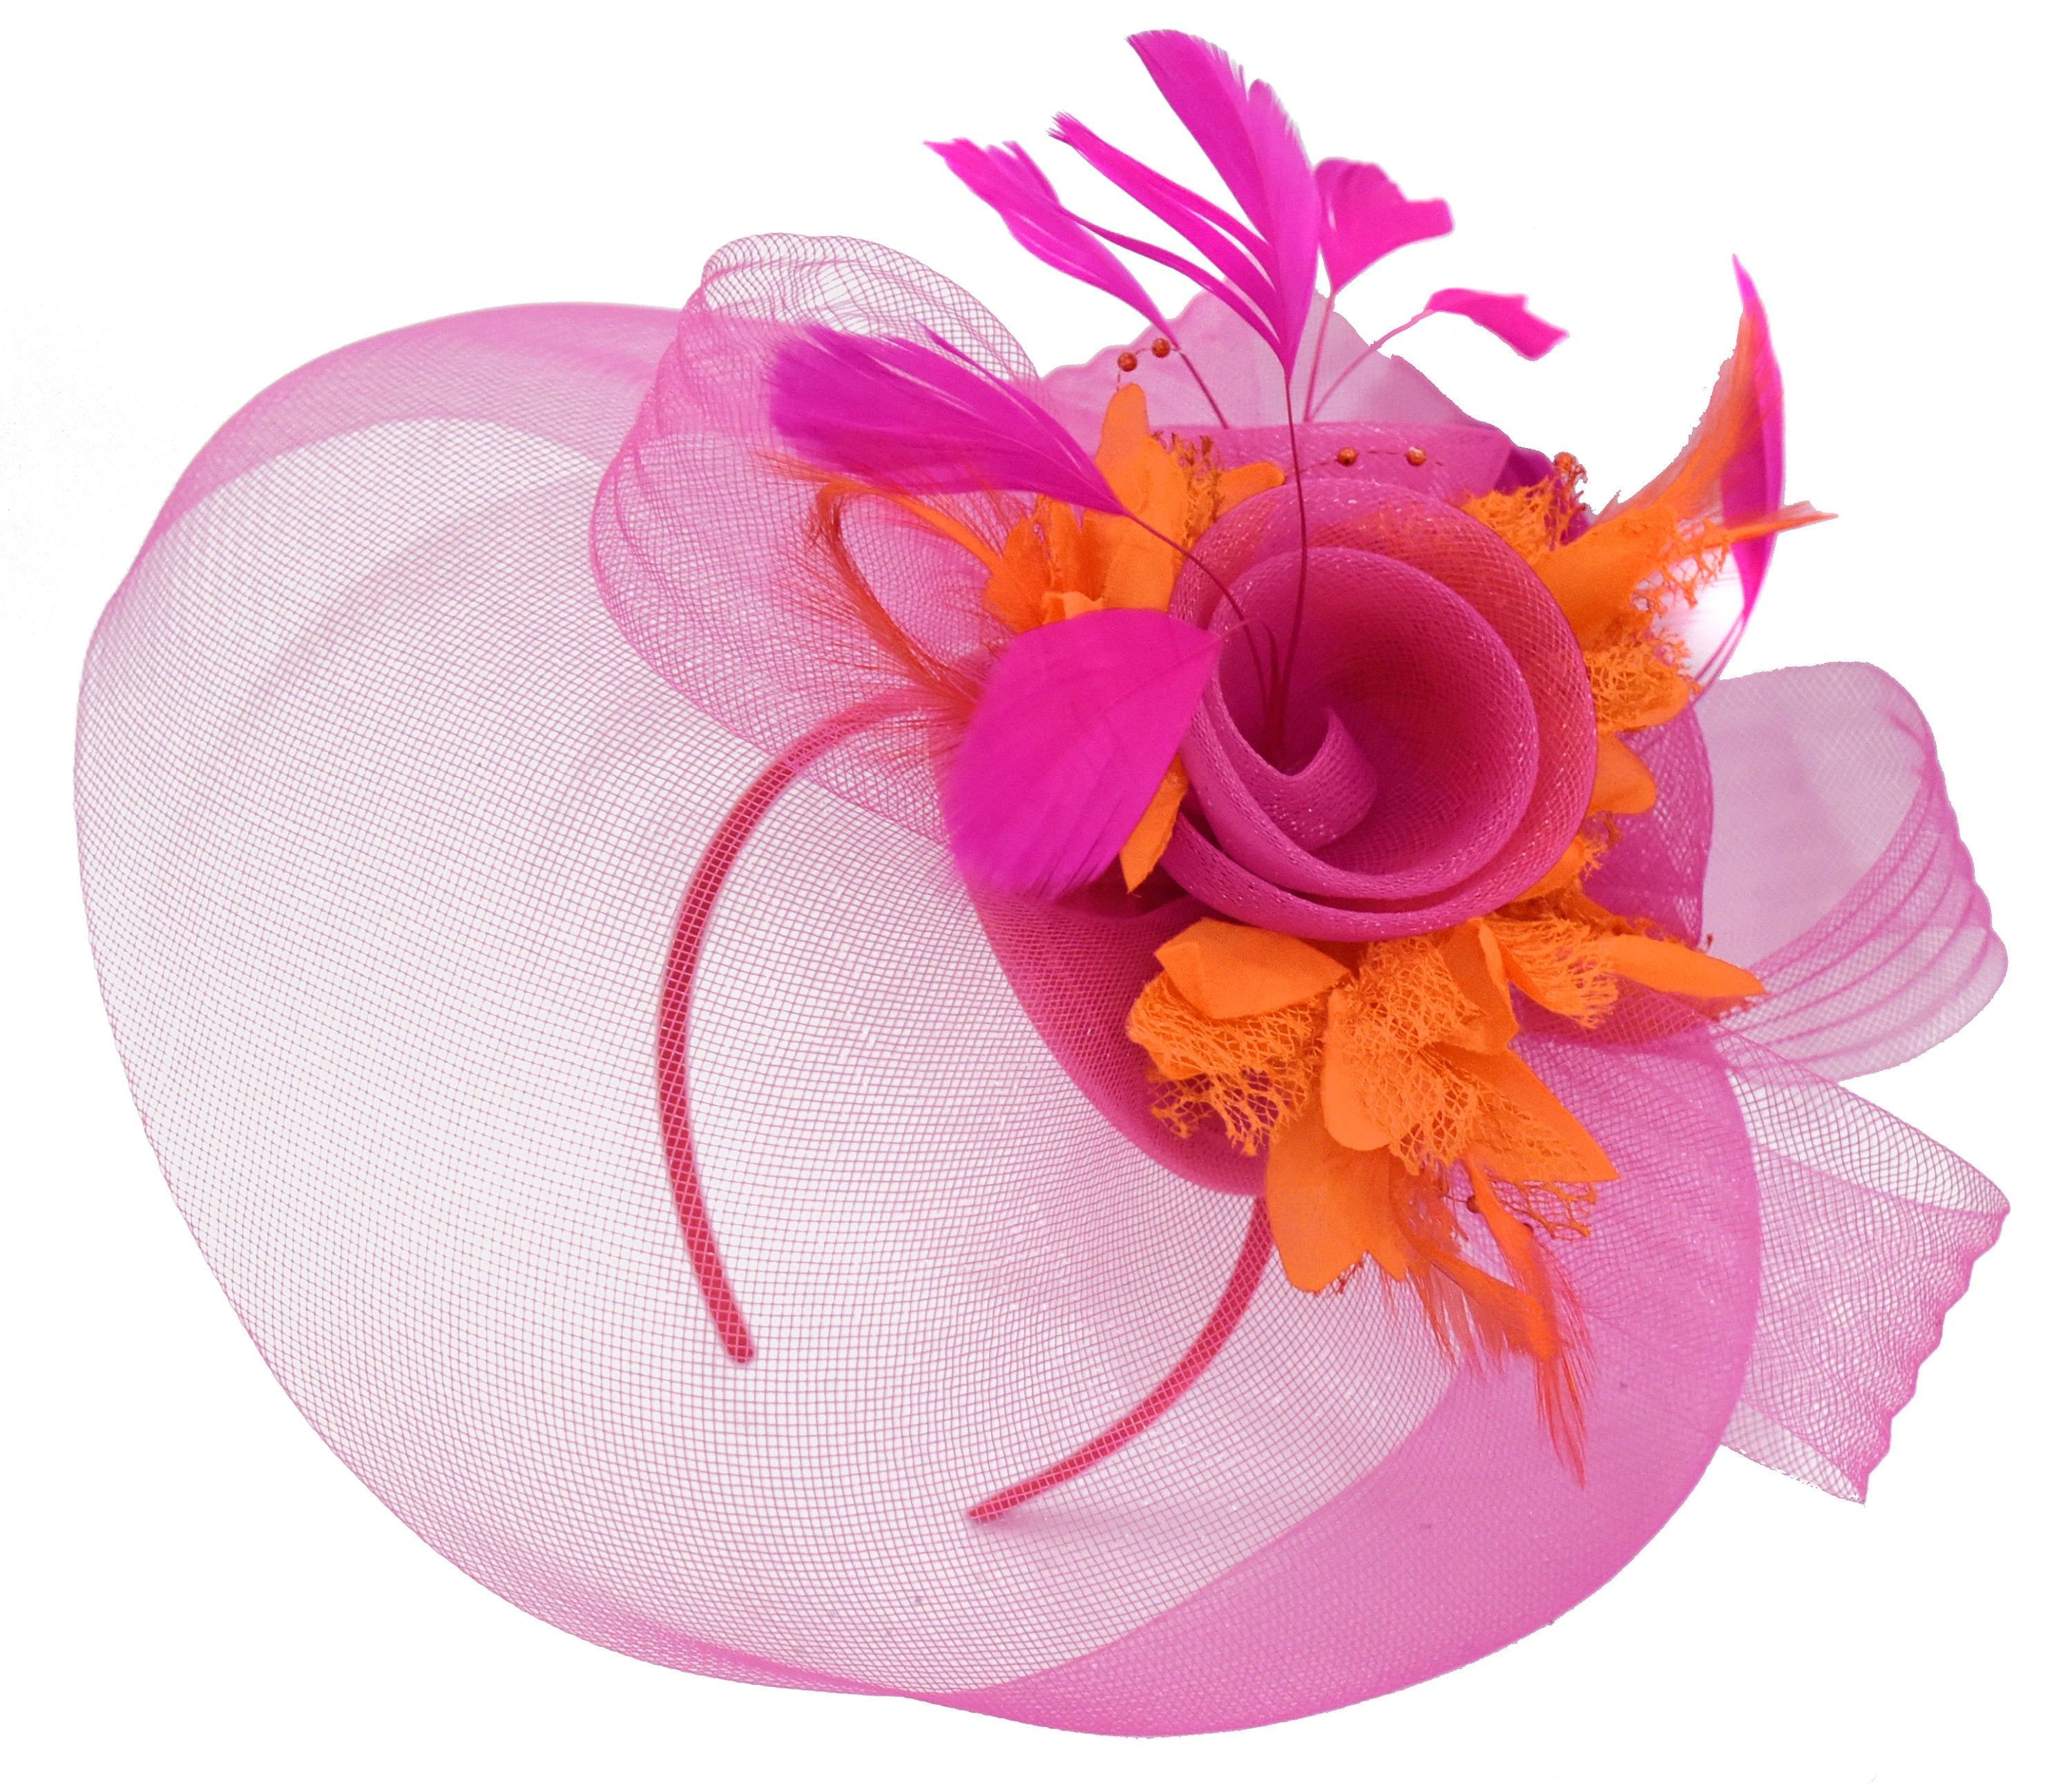 Caprilite Fuchsia Hot Pink and Orange Fascinator Hat Veil Net Hair Clip Ascot Derby Races Wedding Headband Feather Flower